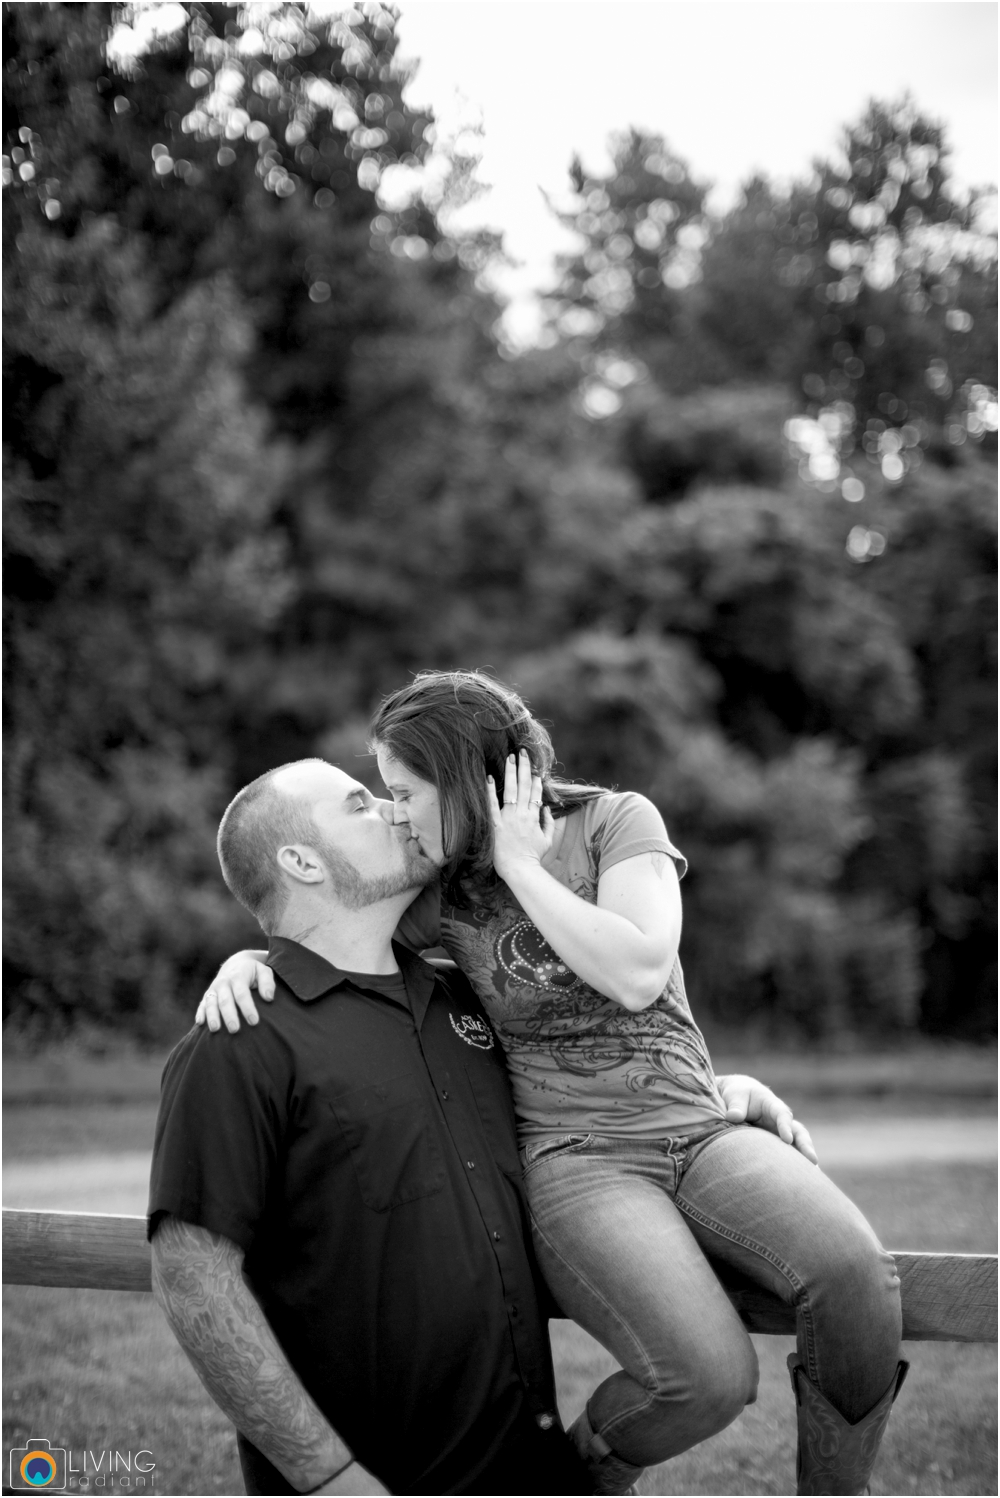 crystal-mike-engagement-session-ellicott-city-maryland-living-radiant-photography_0020.jpg